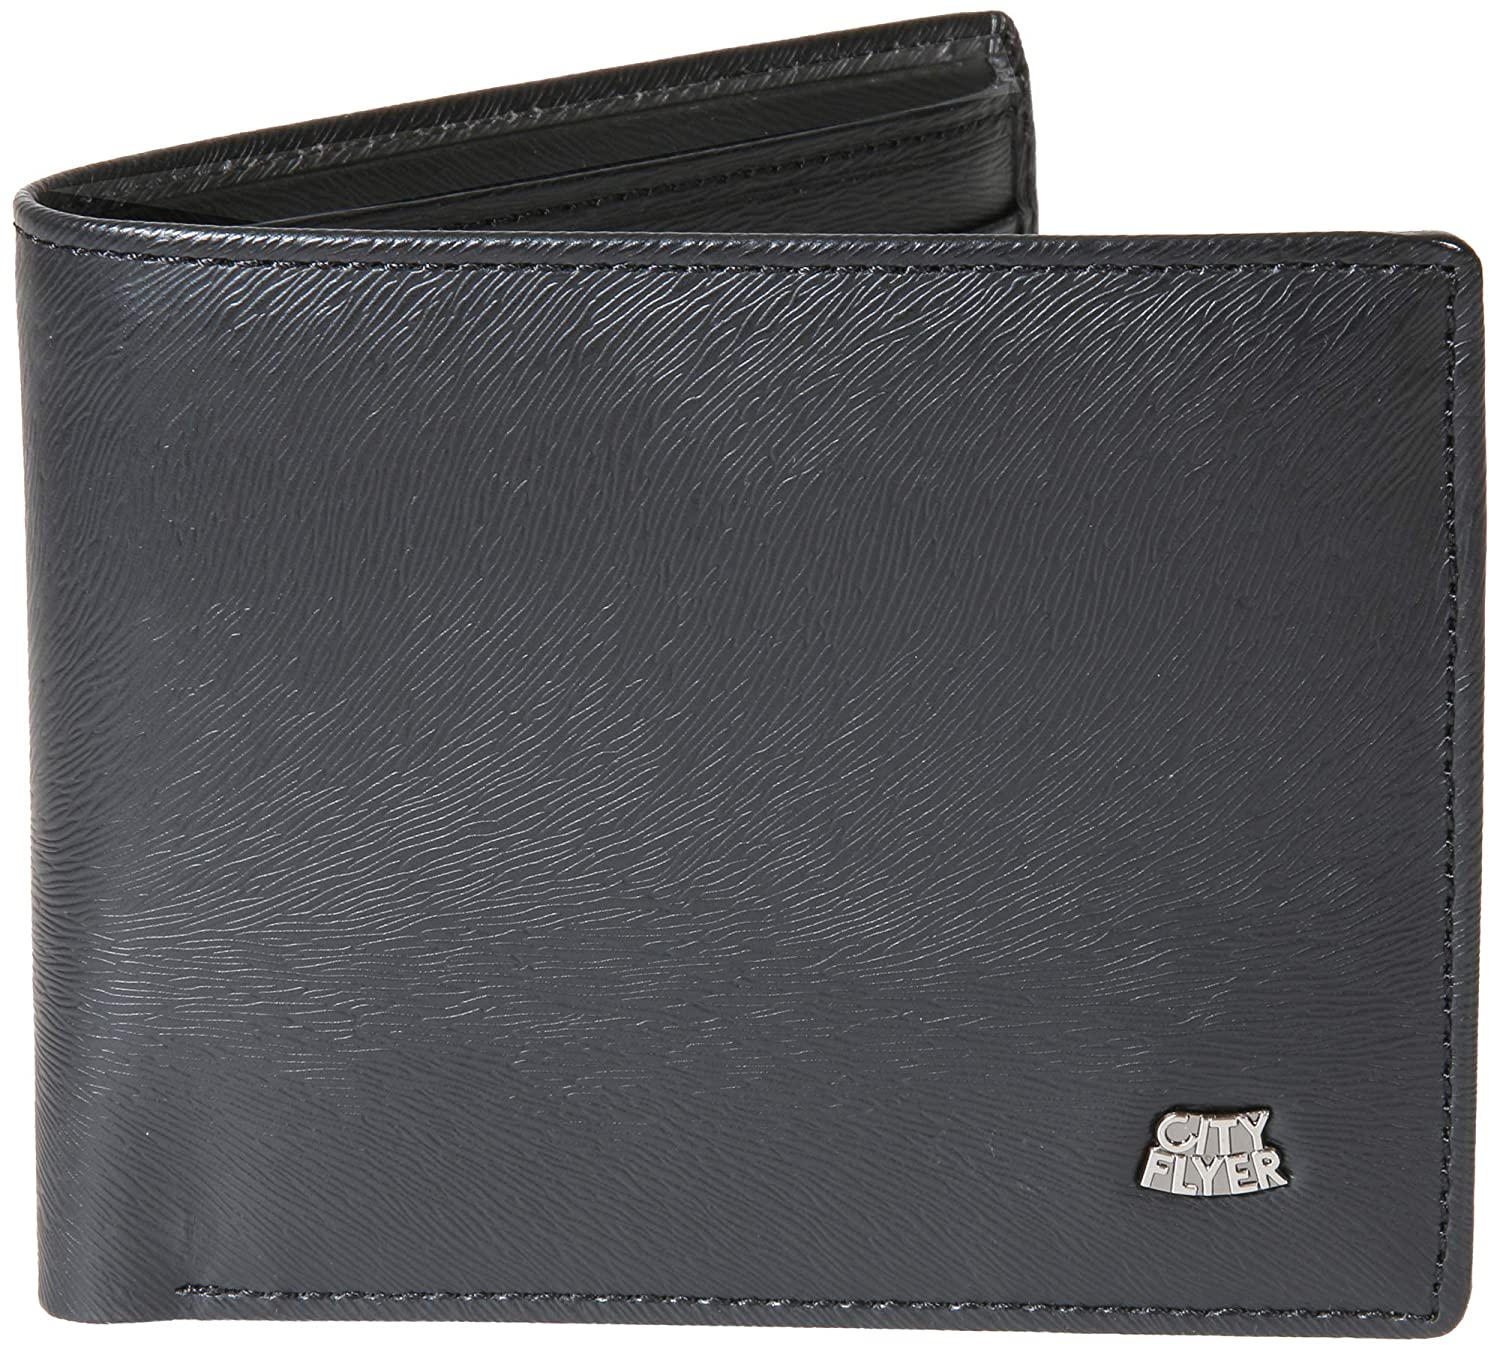 City Flyer Mens Wallet Thin Sleek Casual Bifold Wallet with 8 Credit Card Pockets.